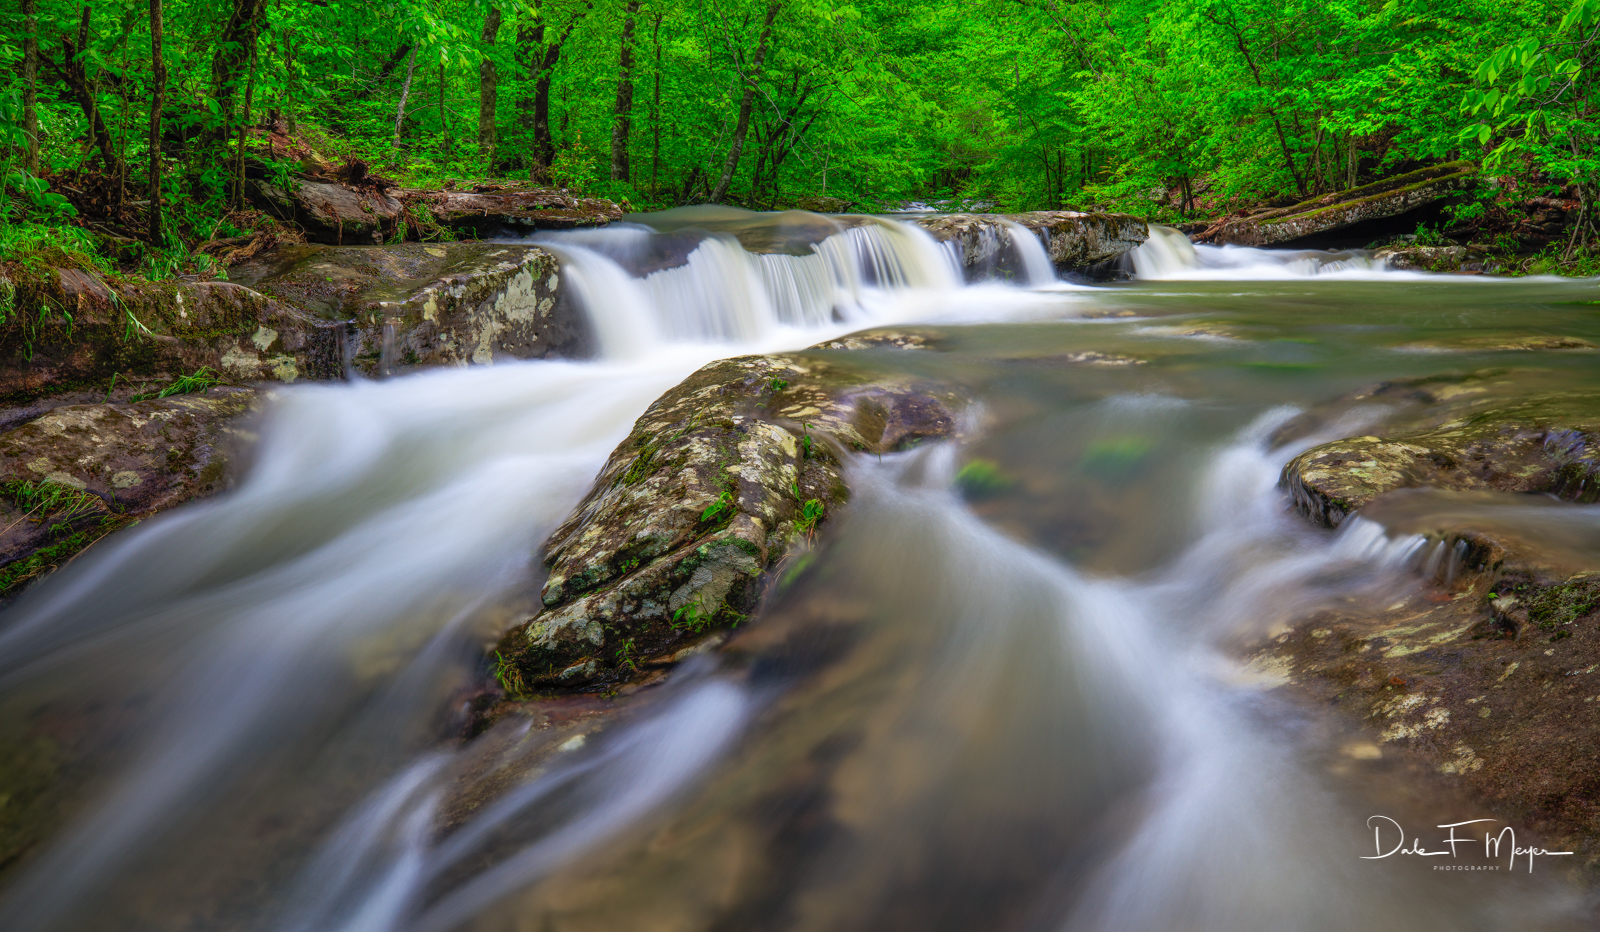 Spring 2017, Upper Buffalo Wilderness Area, Whitaker Creek Arkansas, ozark national forest, rivers streams and waterfalls gallerie, water flow, waterfall, photo